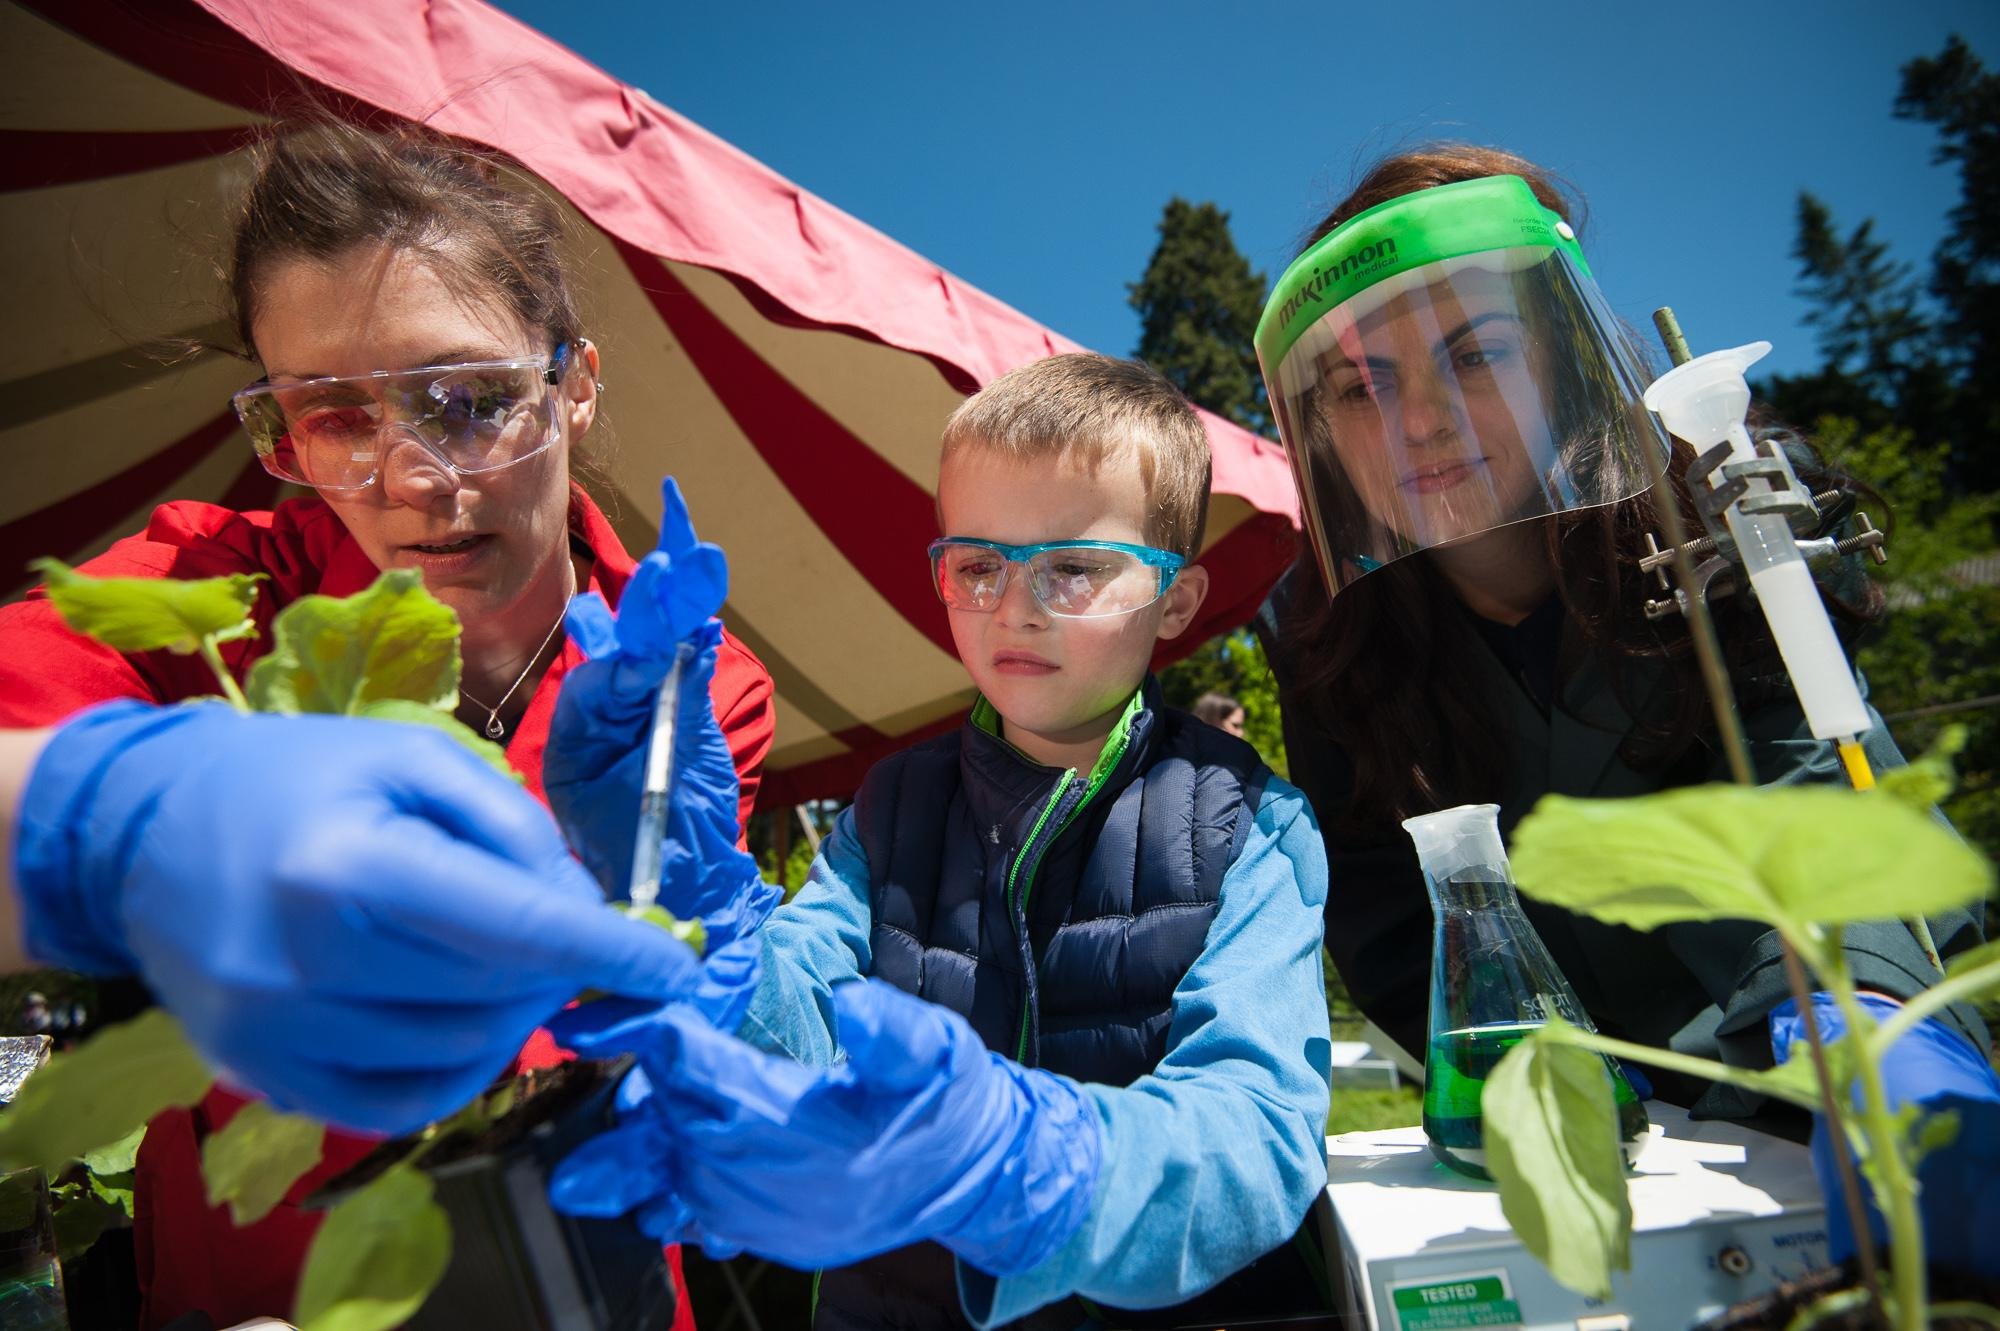 Hands-on: Judith Paulus, left, and Luisa Madeira of Oxford University's department of plant sciences, with six-year-old Robbie Tidmarsh at the plant day Harcourt Arboretum at Nuneham Courtenay held on Saturday